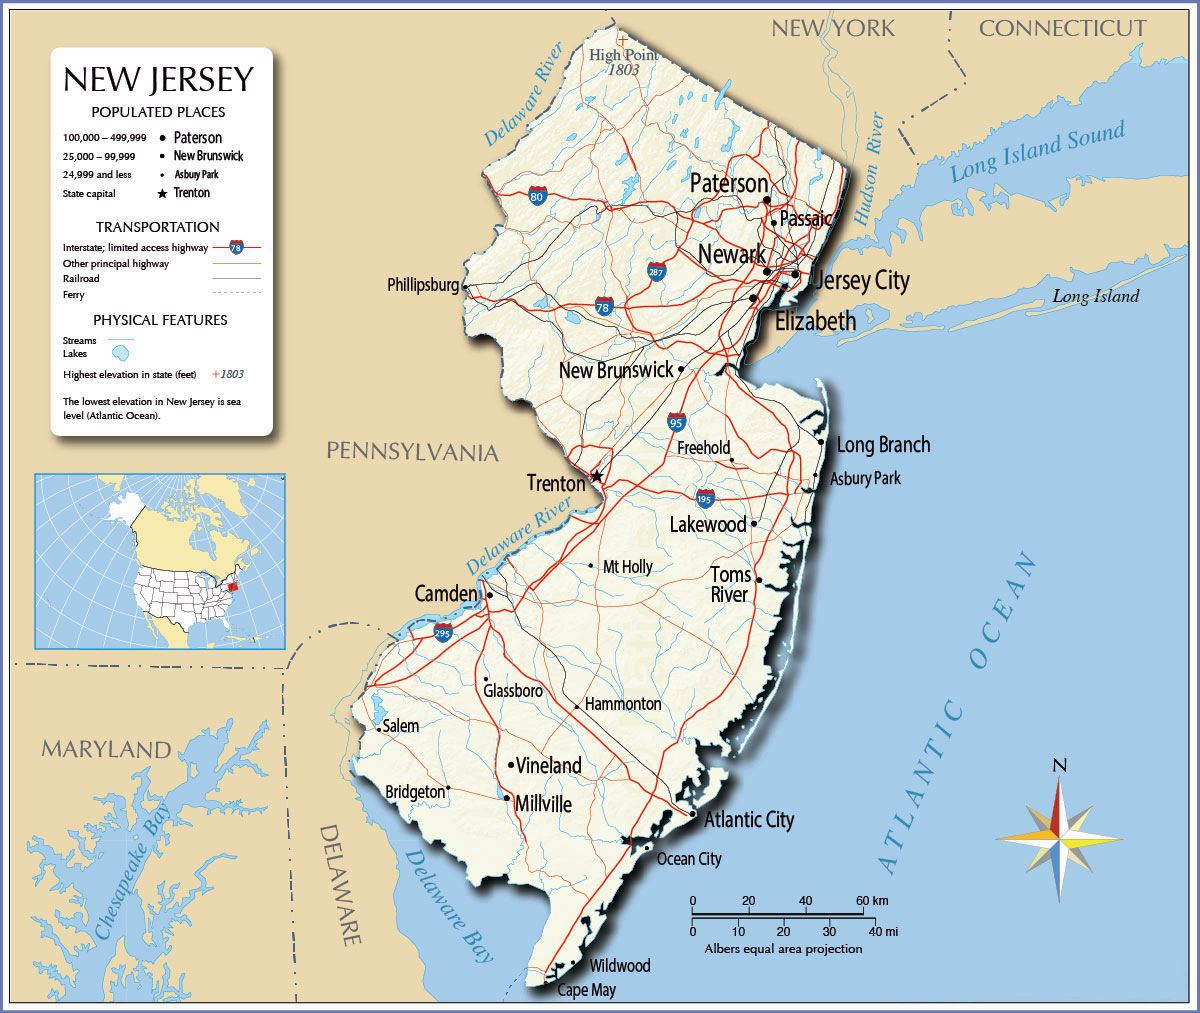 Large New Jersey State Maps For Free Download And Print | High - Printable Street Map Of Jersey City Nj